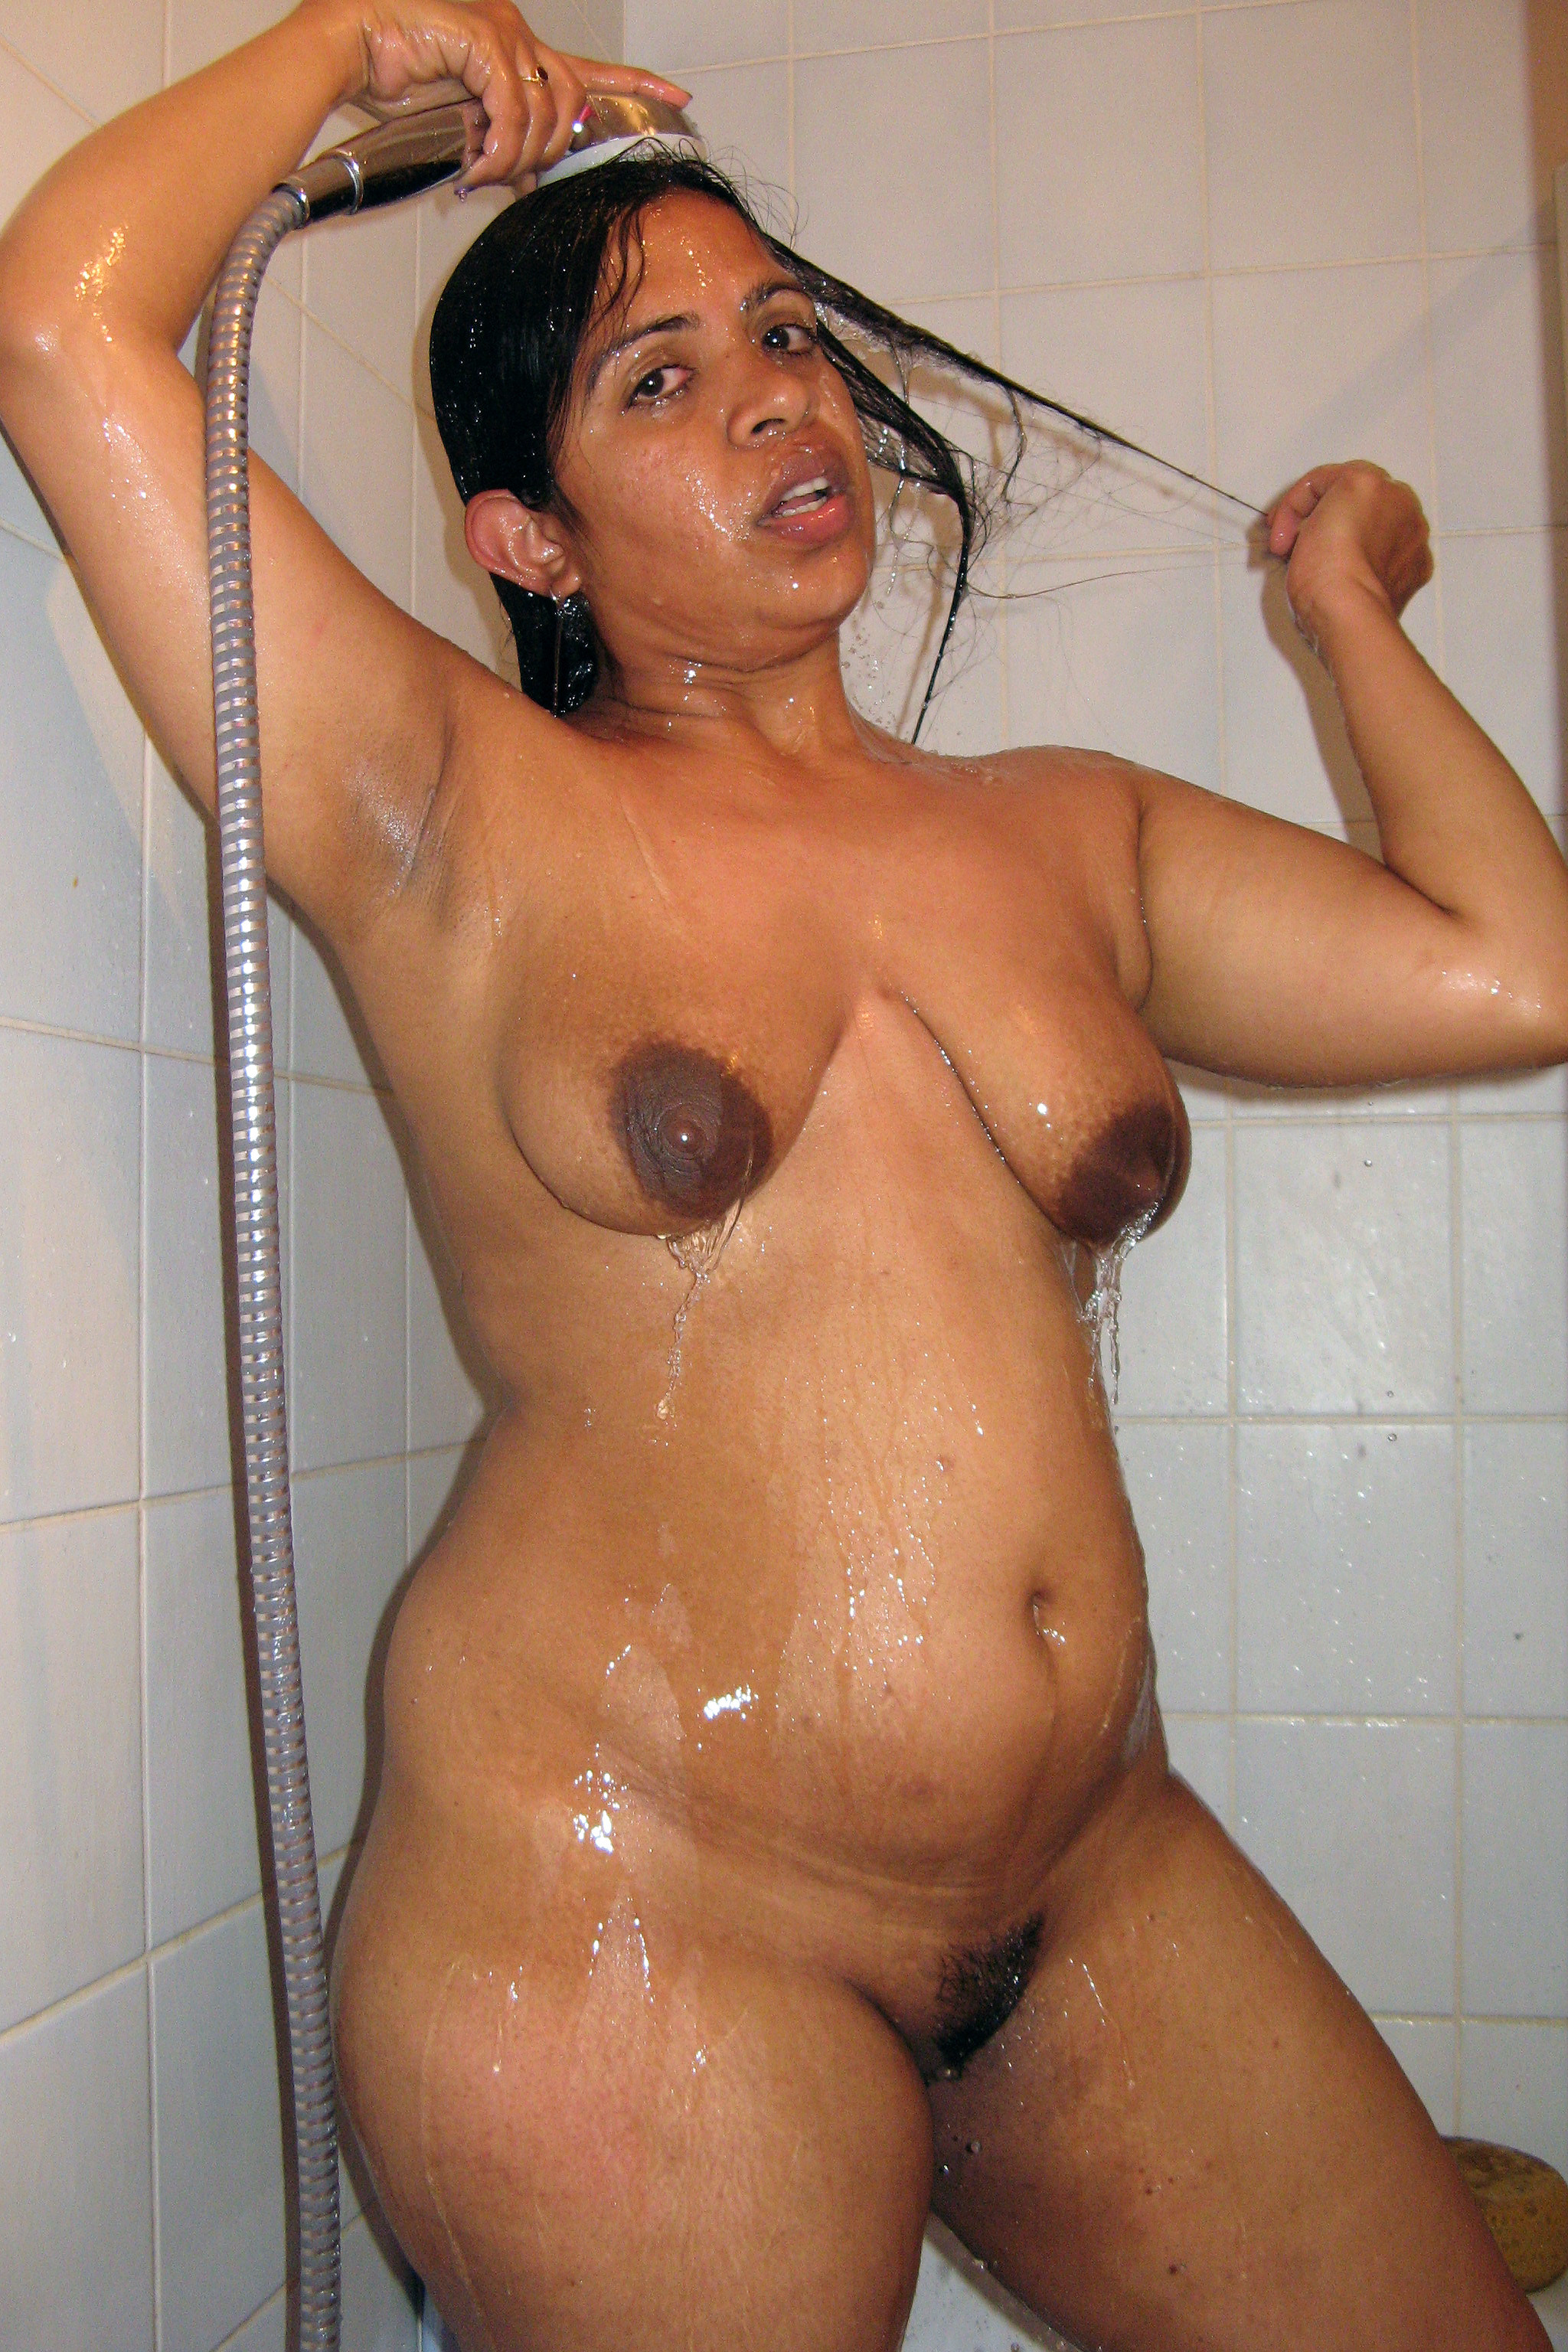 excellent brenda james milf cruiser torrent that would without